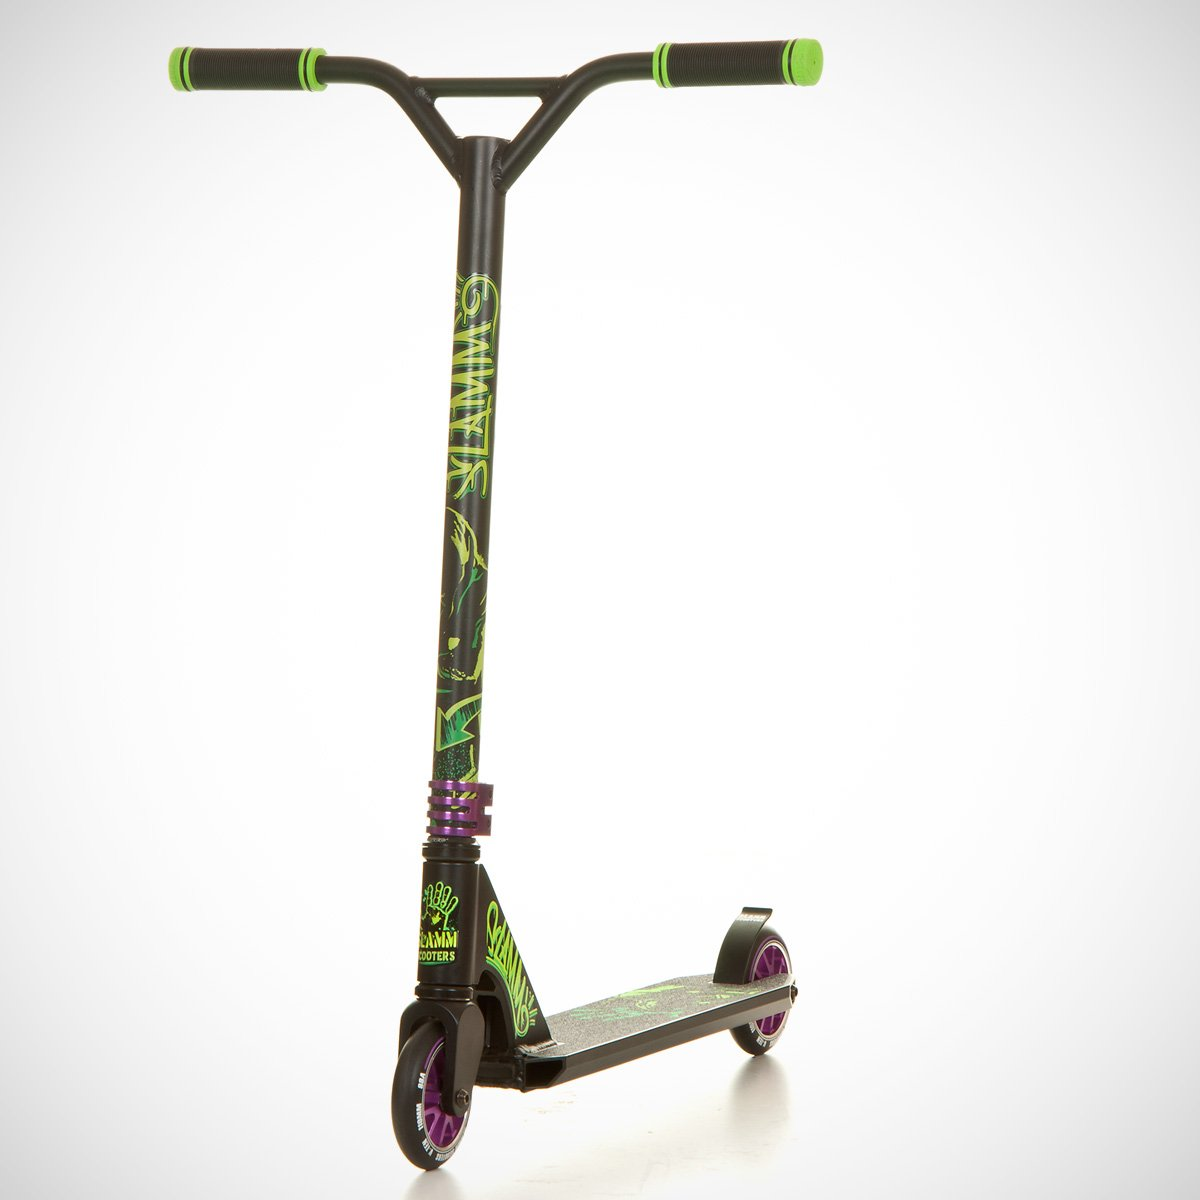 Slamm - Patinete Mischief II Rebel Verde Negro SL425: Amazon ...